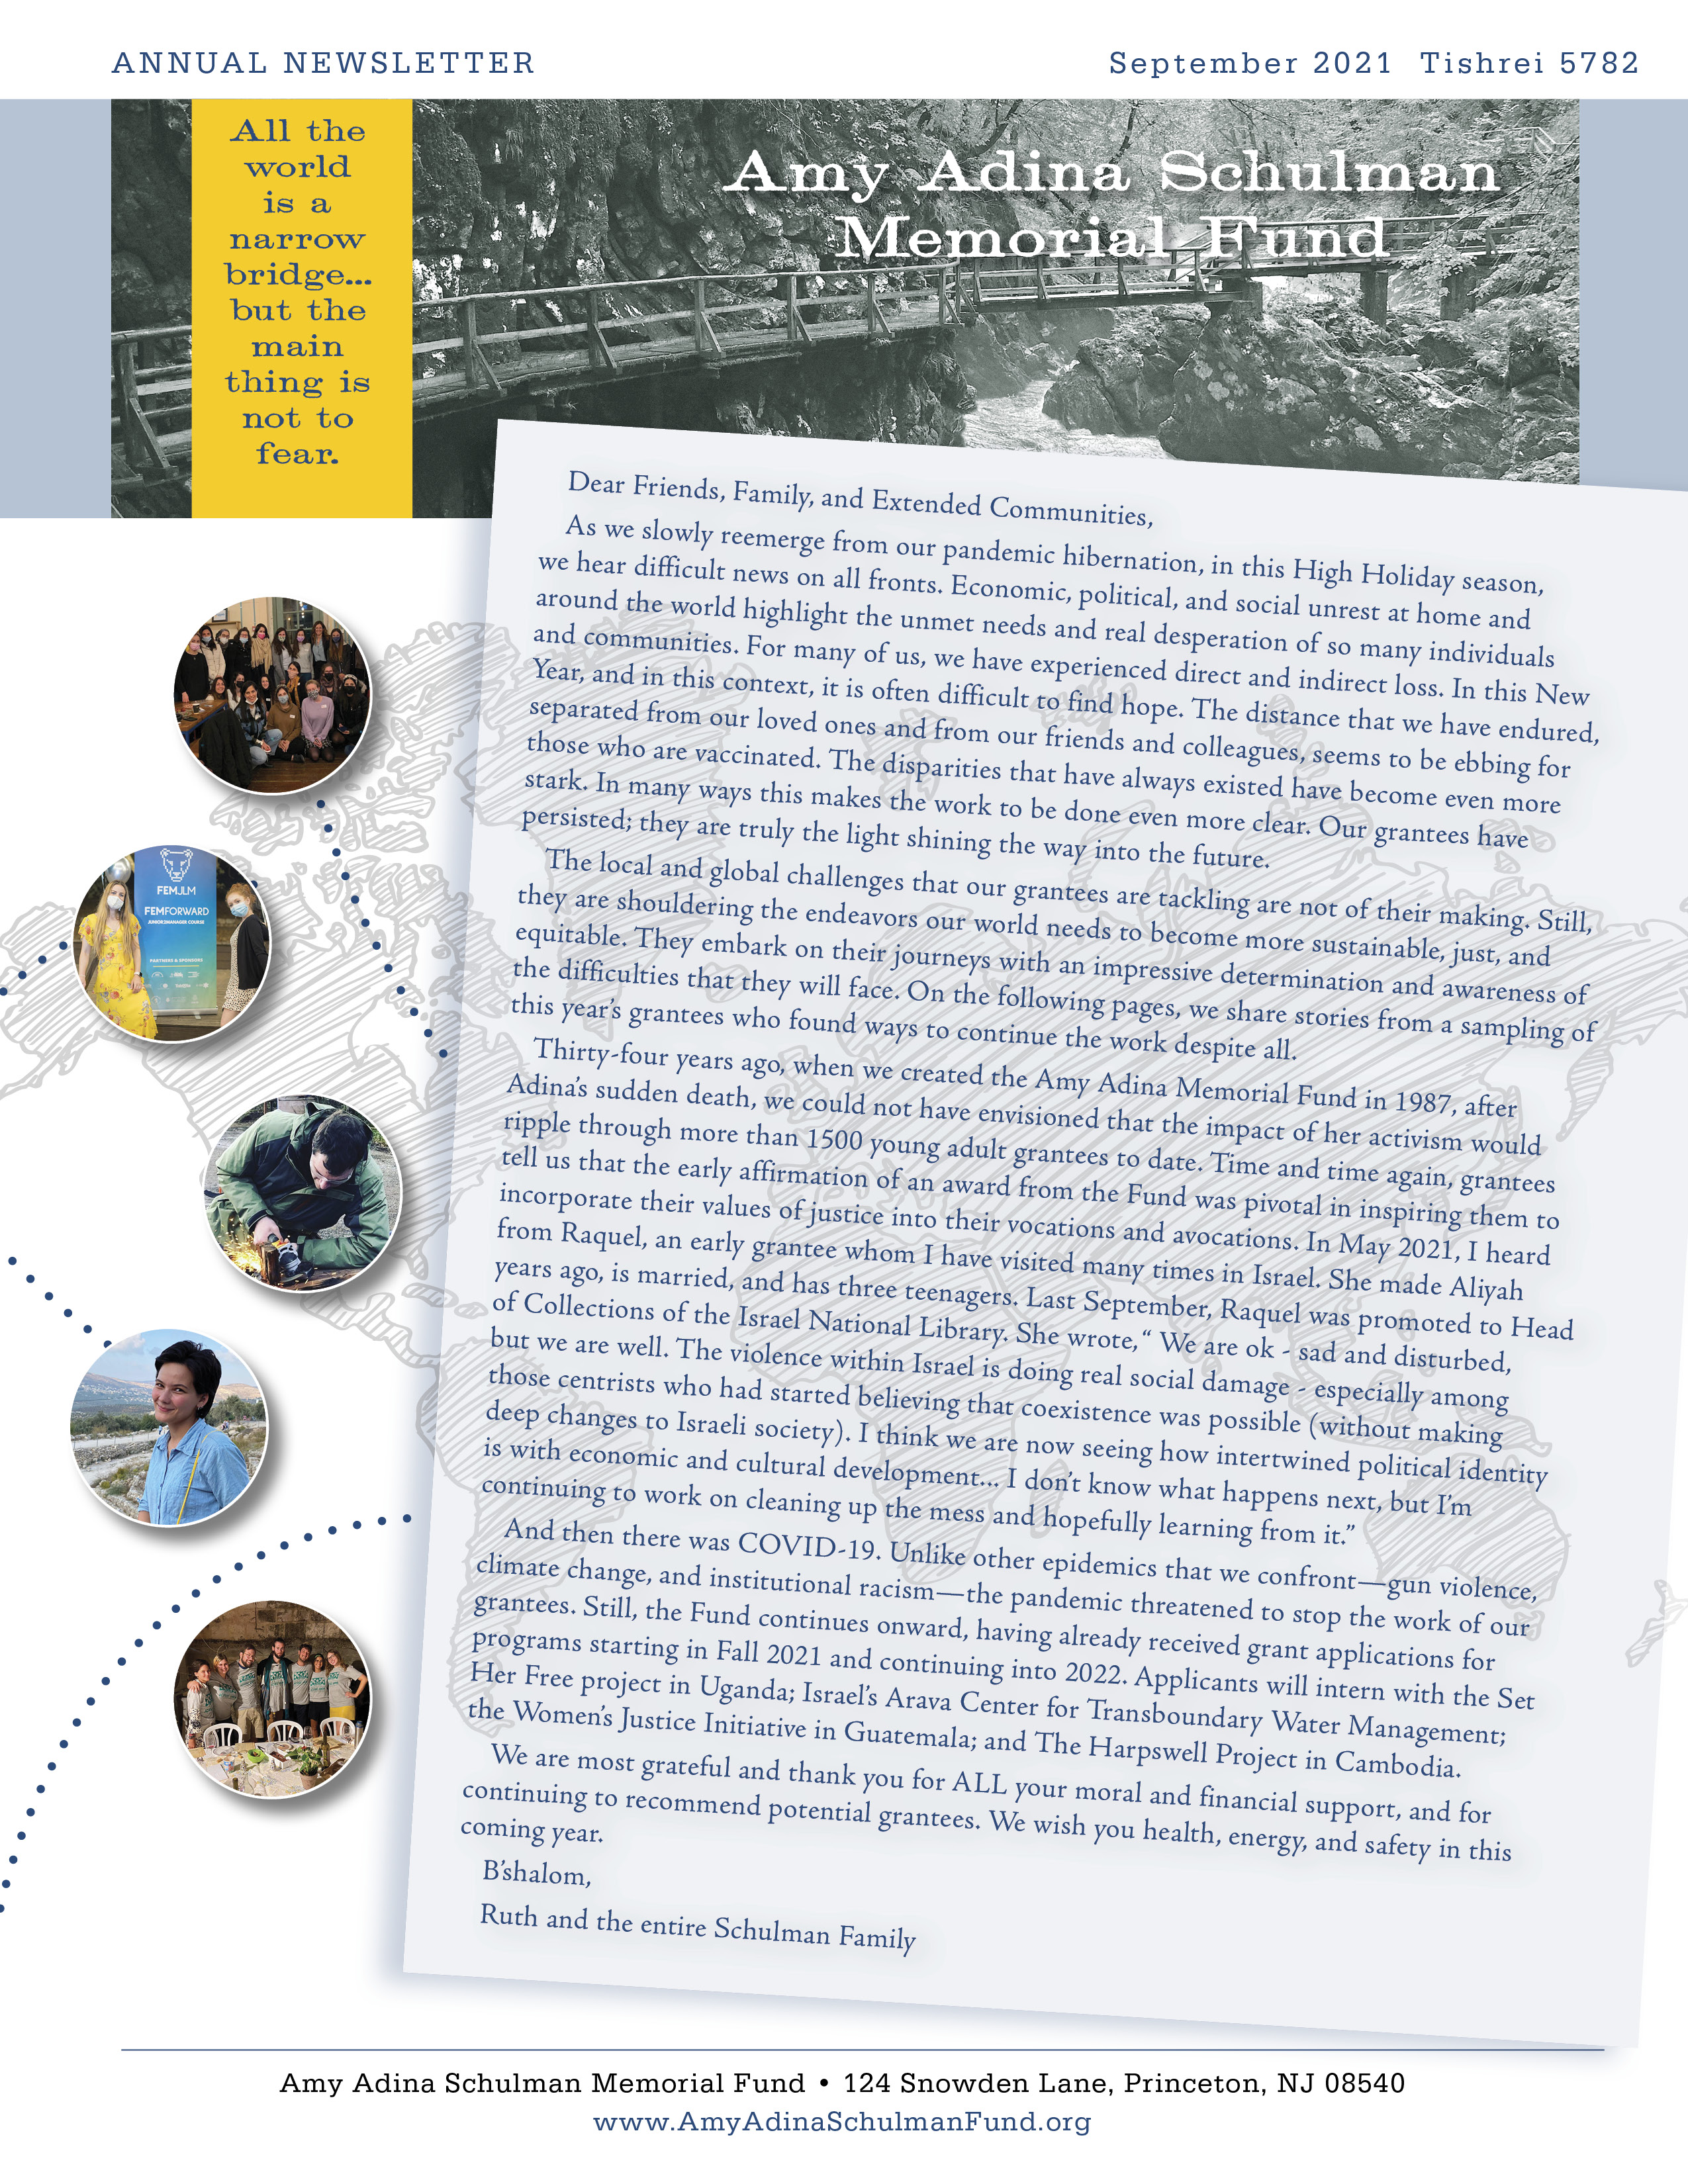 Cover Image of the current 2021 Newsletter